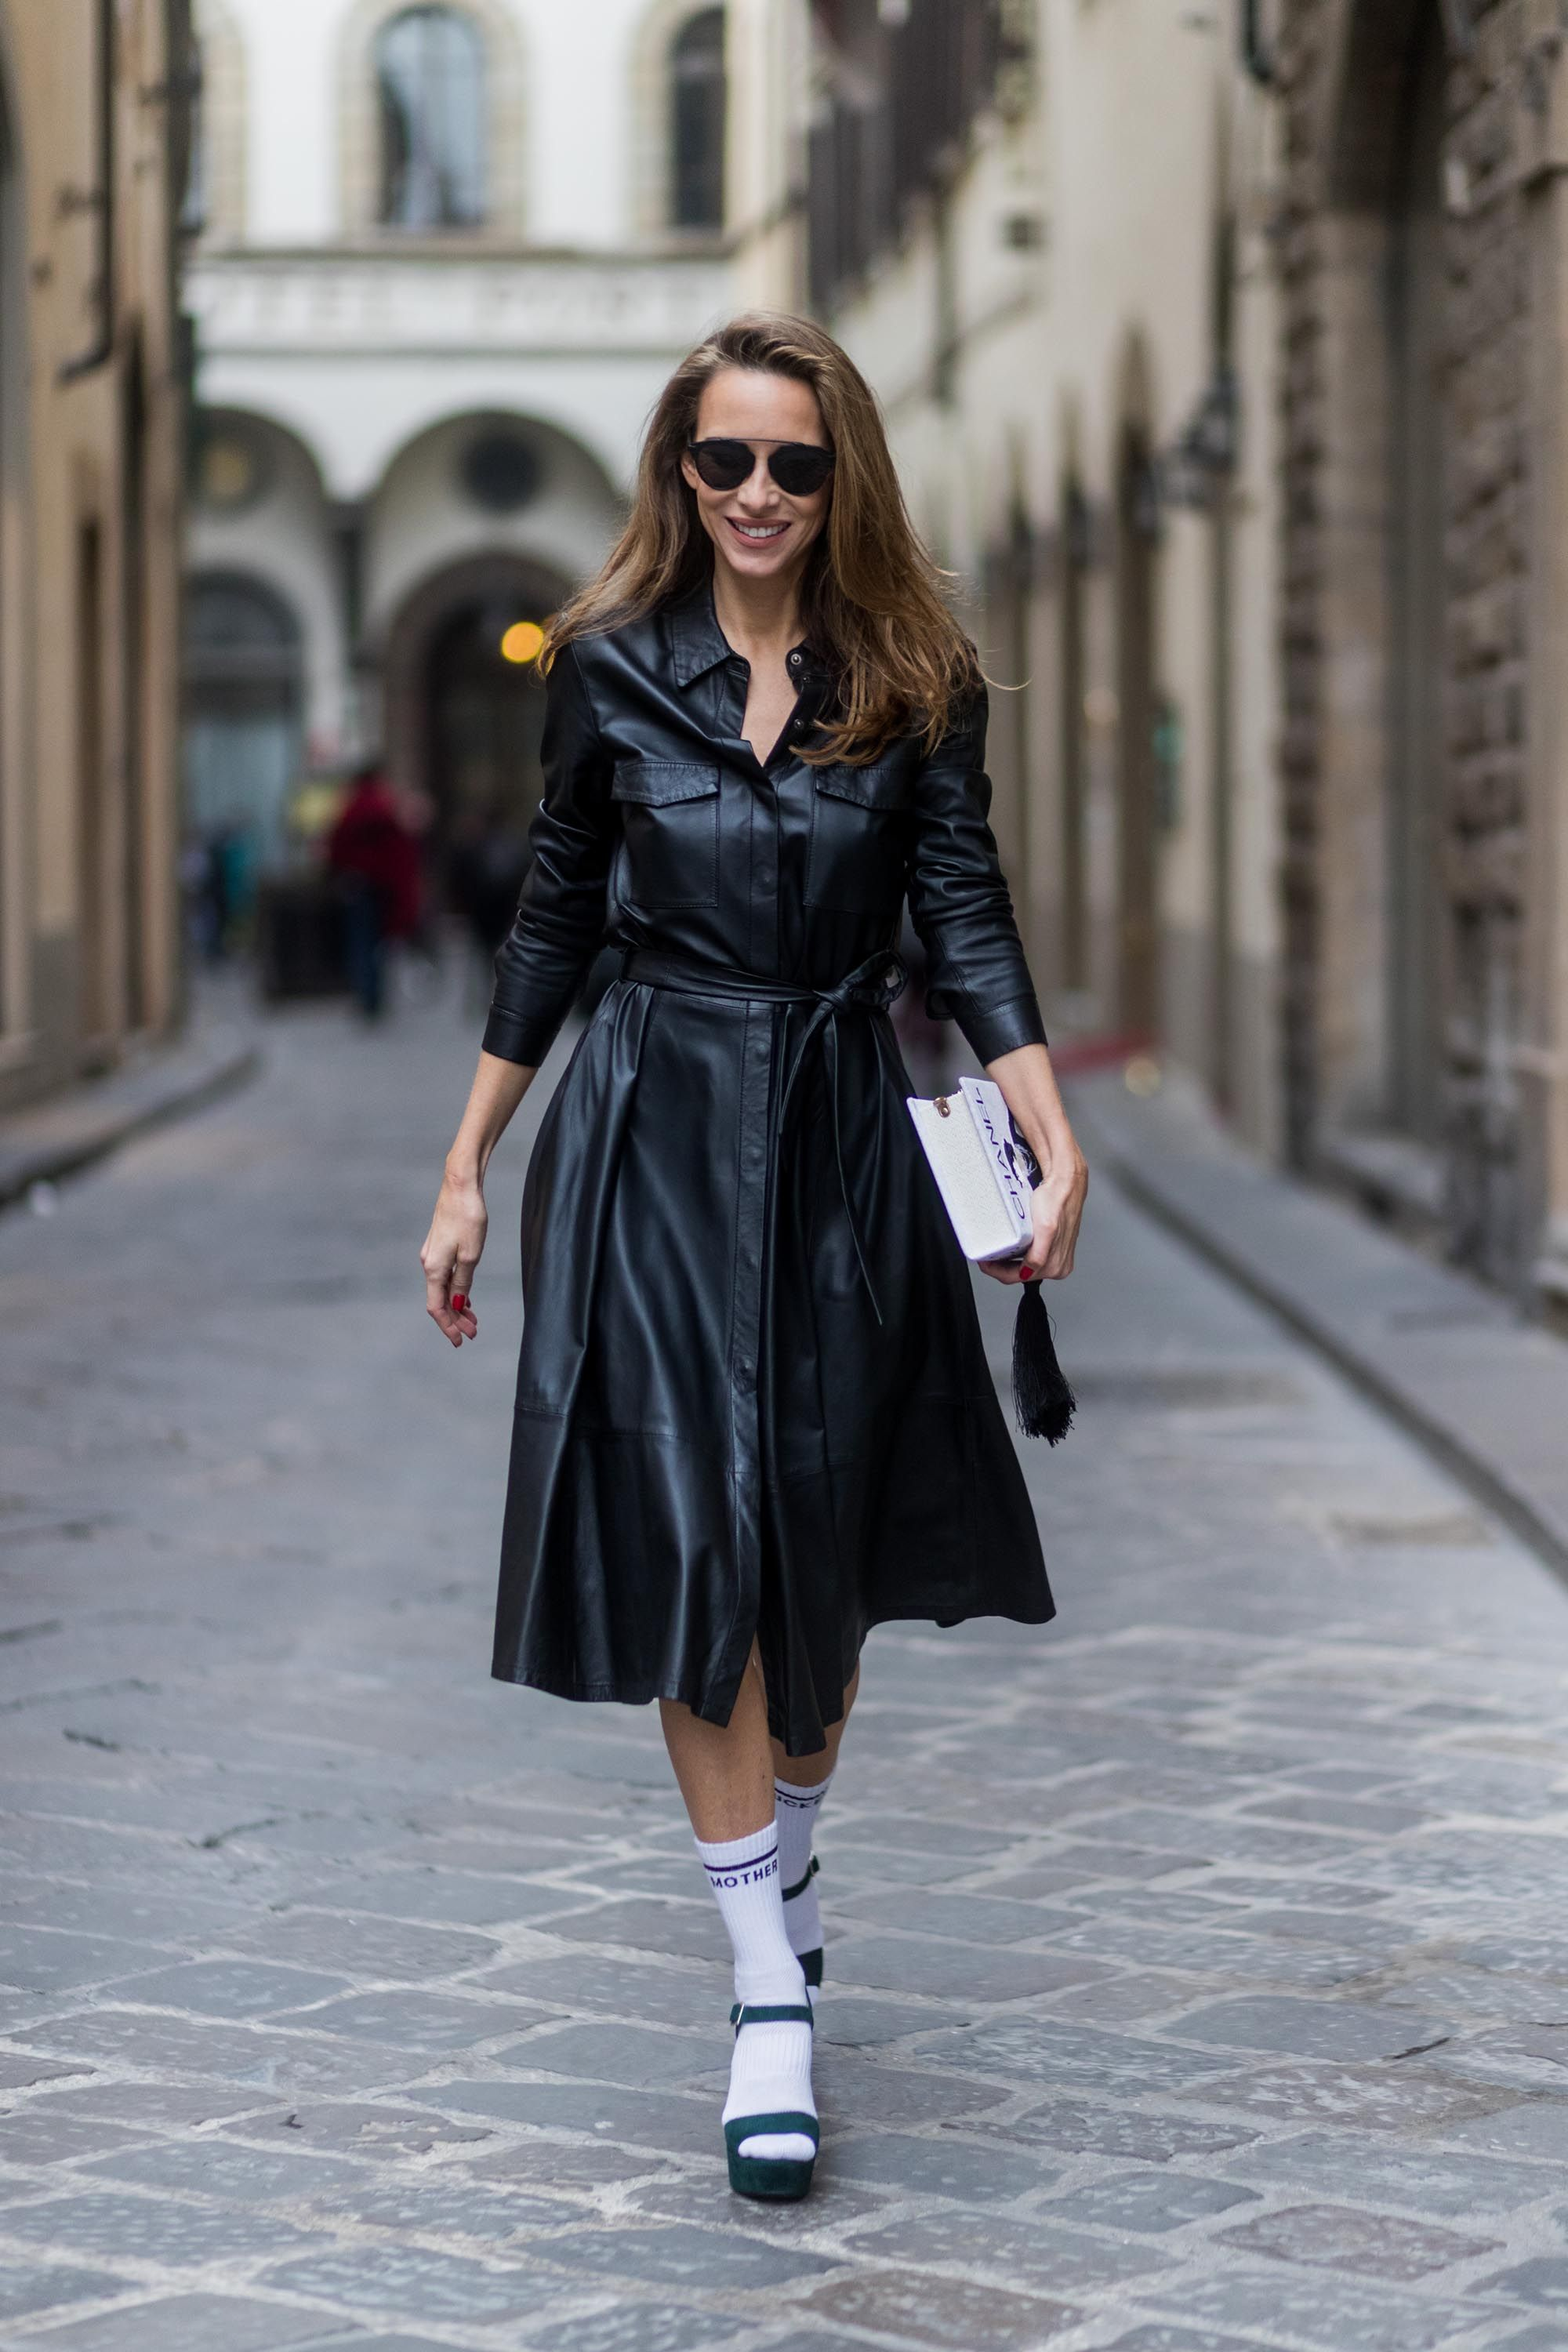 92929366d Alexandra Lapp street style in Florence | LEATHER | Dresses, Shirt ...